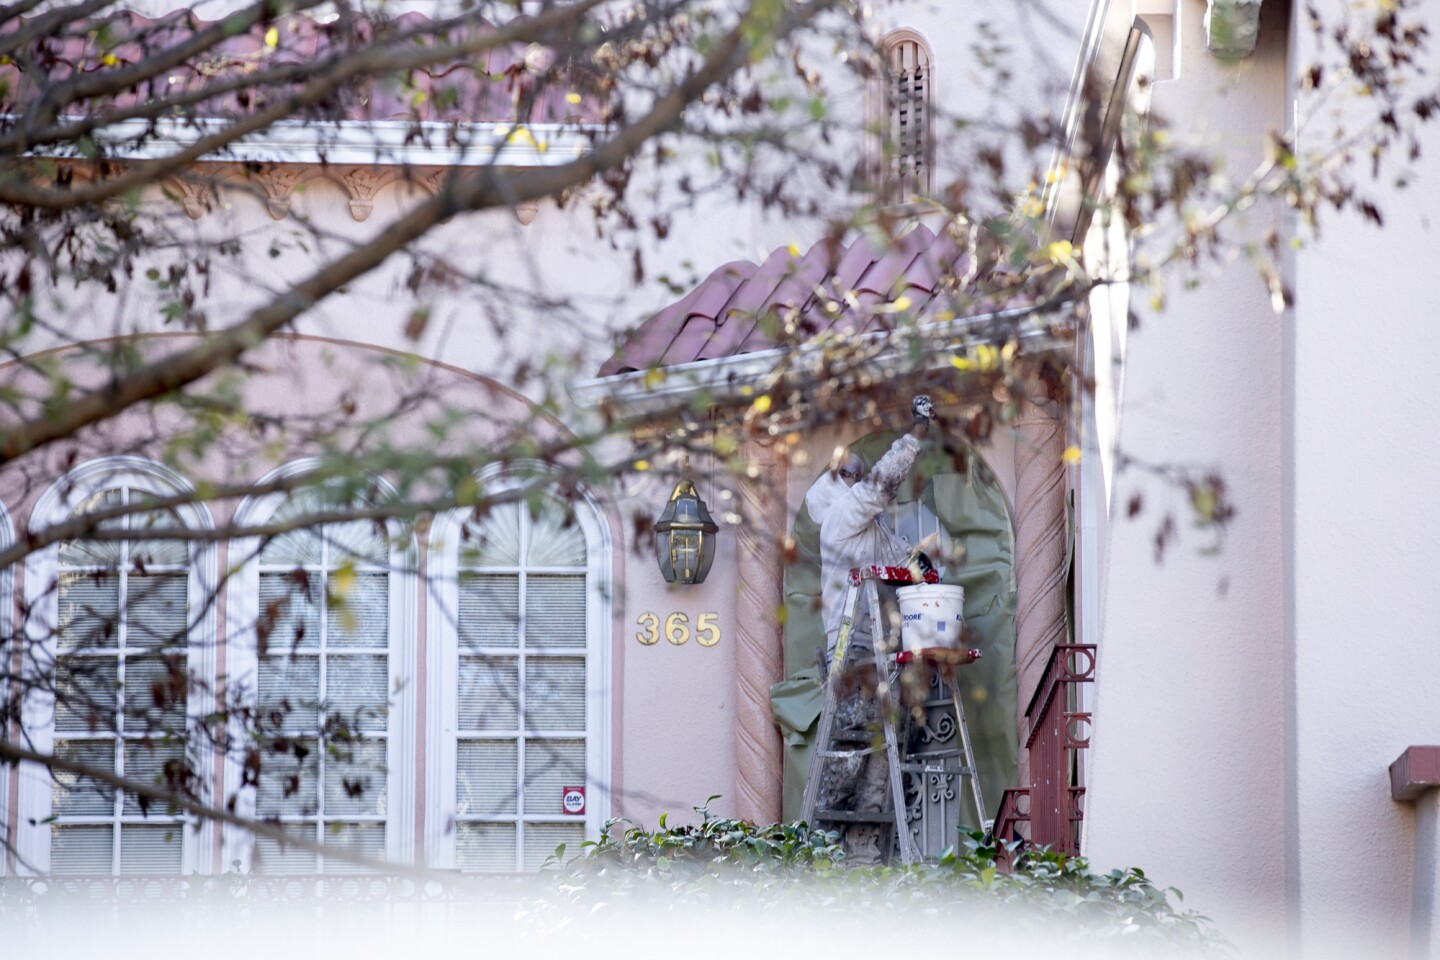 A man in coveralls stands on a ladder as he paints a house's exterior